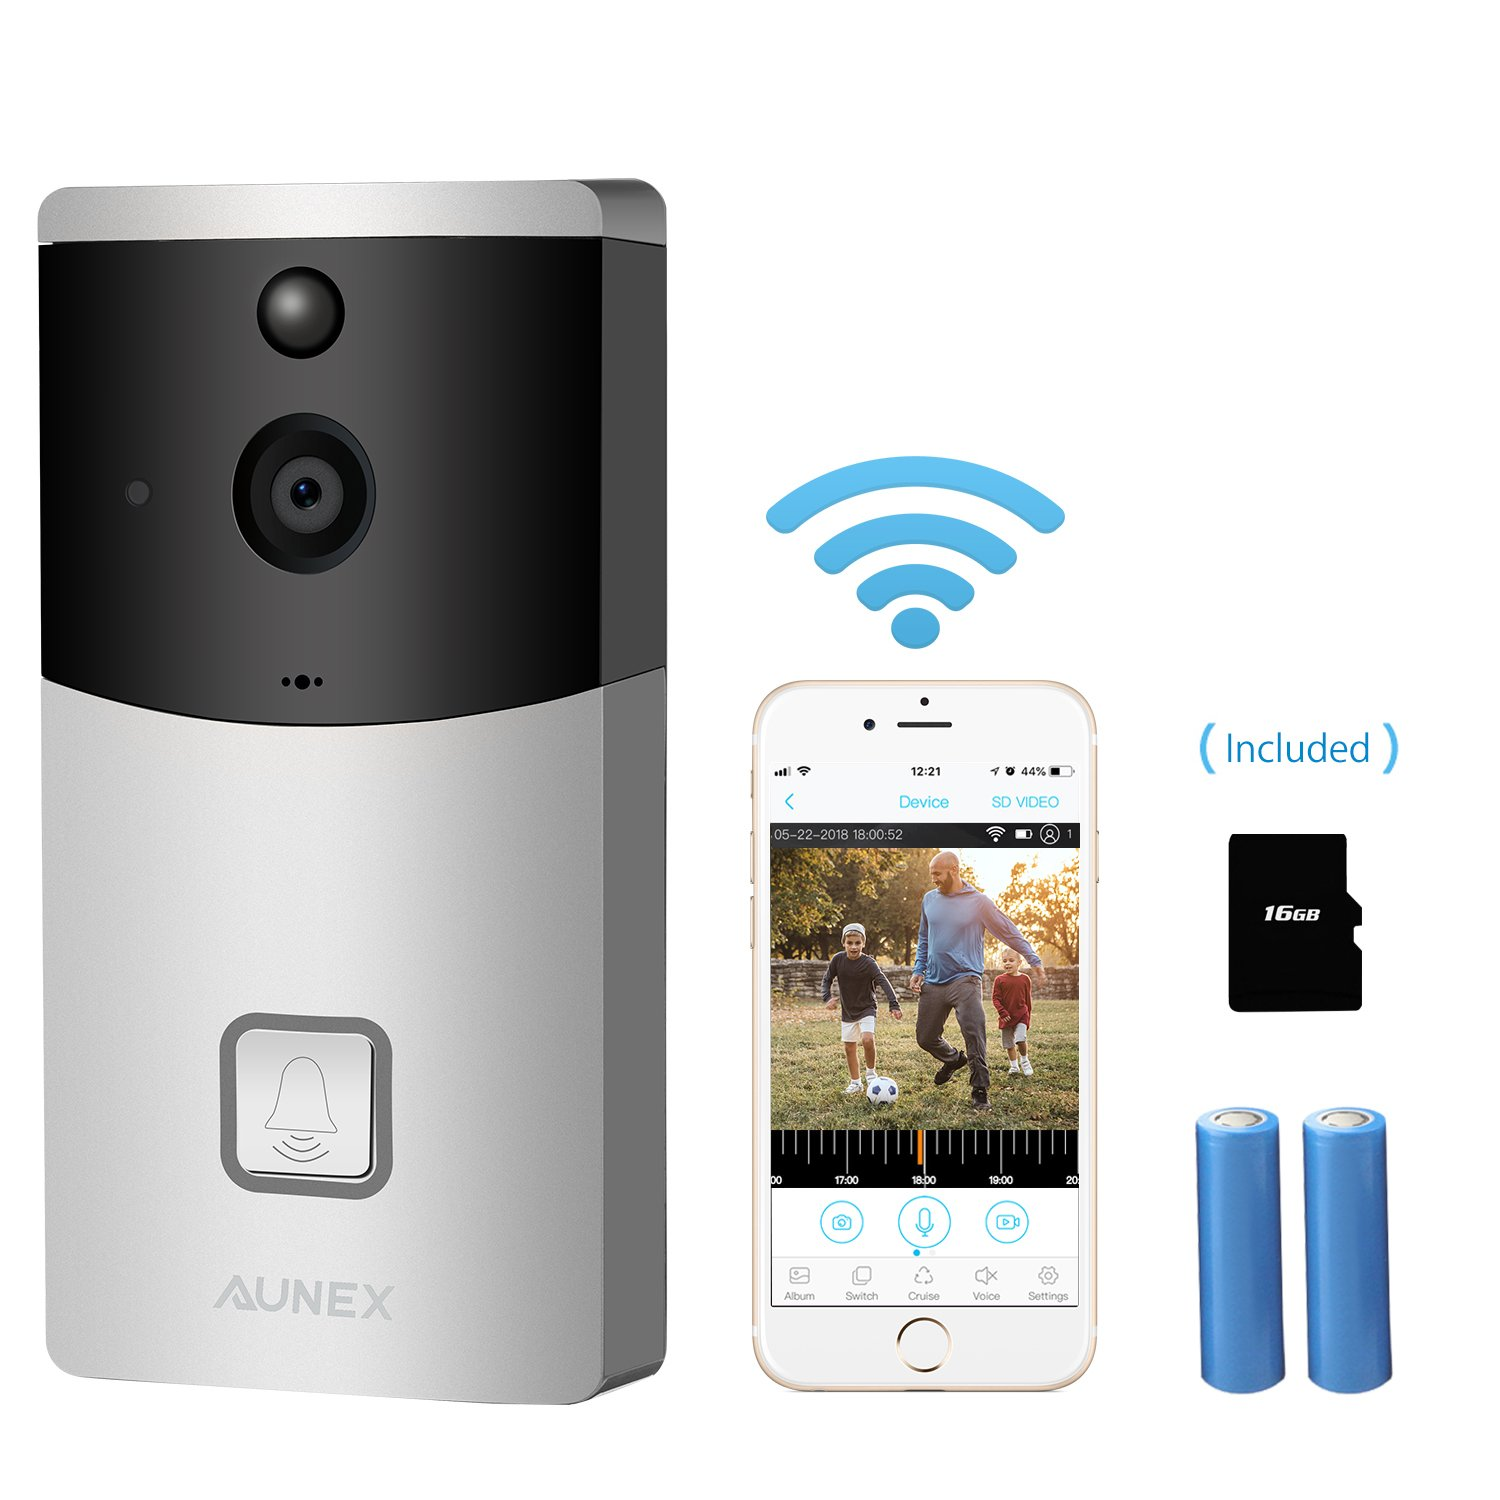 UPGRADED Video Doorbell,WIFI Wireless Doorbell Camera 720P HD Security Camera PIR Motion Detection Night Vision Real-Time Video TwoWay Audio Wideangle for IOS and Android Built-in 16GB SD Card(Silver)